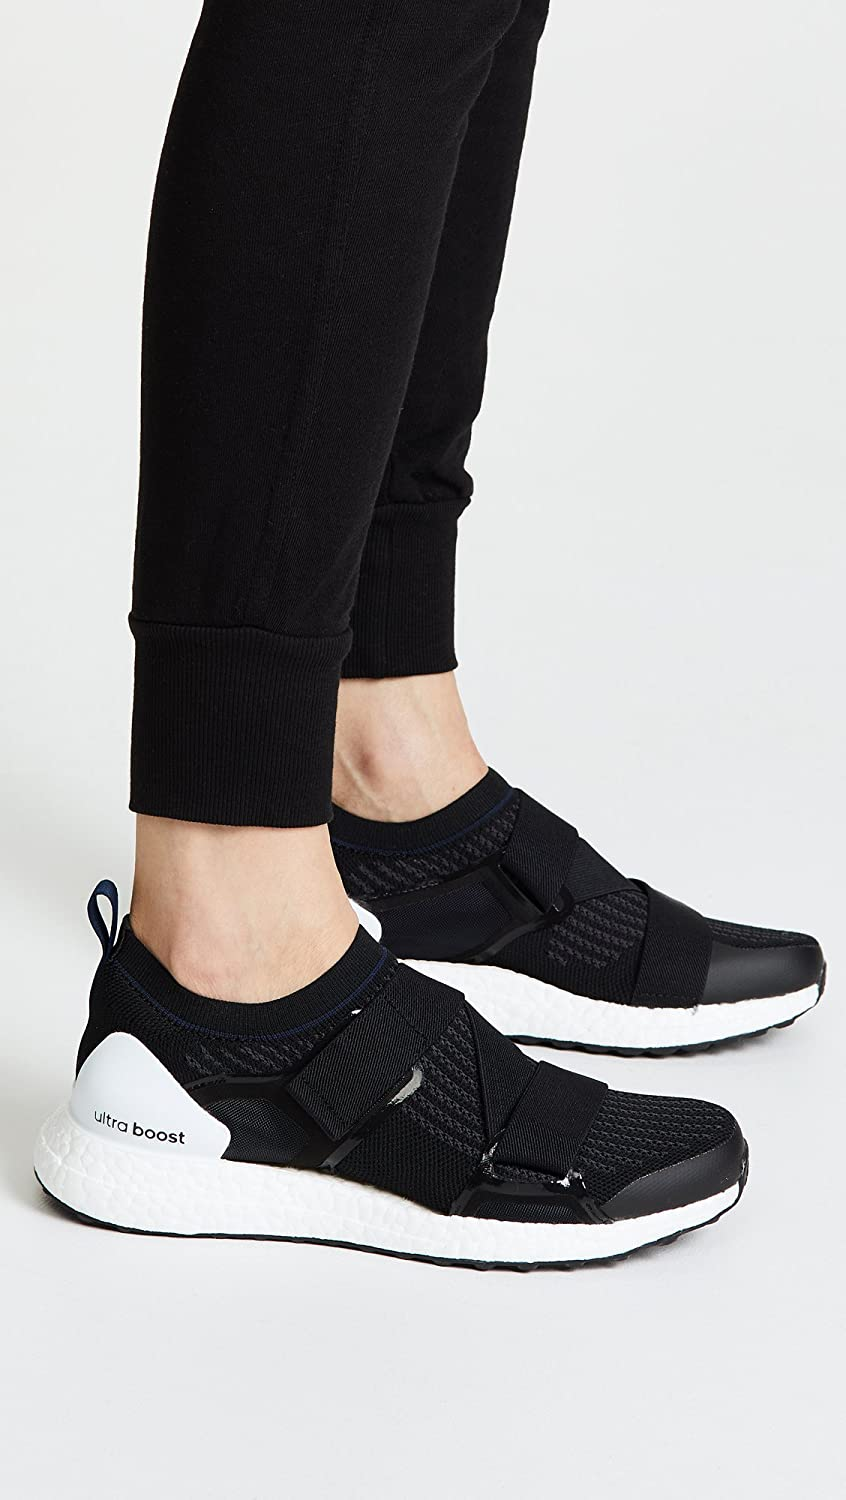 new concept 760b3 74012 adidas by Stella McCartney Women s Ultra Boost X Sneakers  Amazon.co.uk   Shoes   Bags